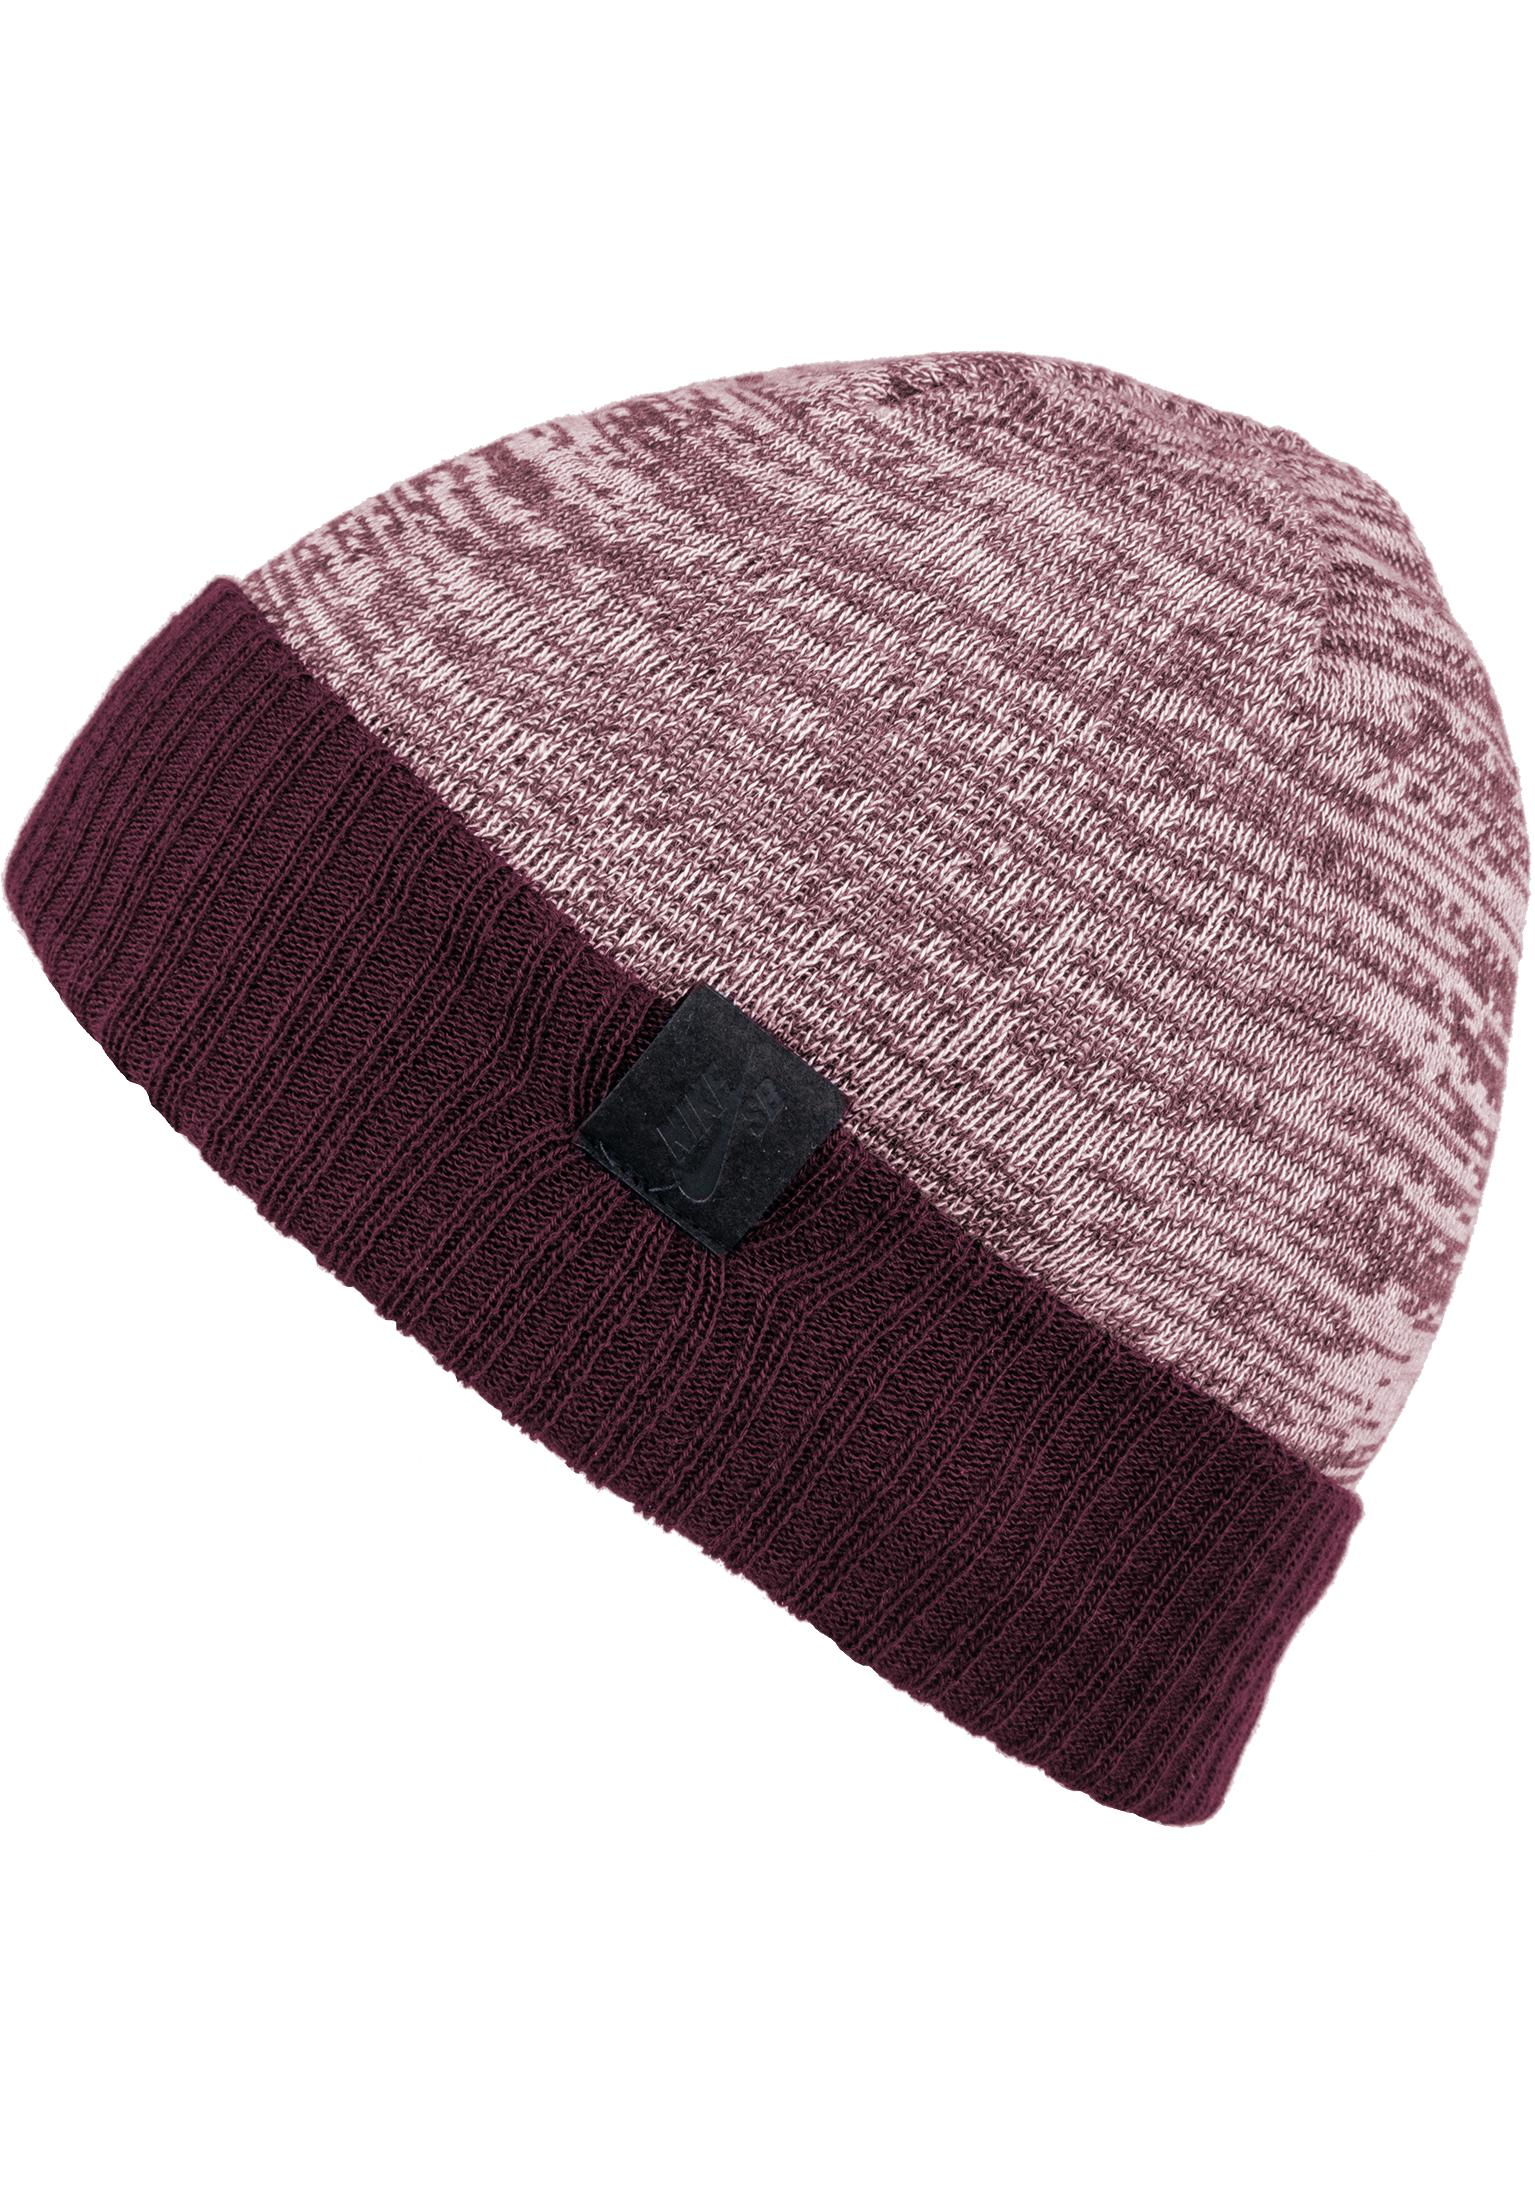 finest selection 2a39d 7310a Seasonal Nike SB Beanies in burgundy-crush for Men   Titus